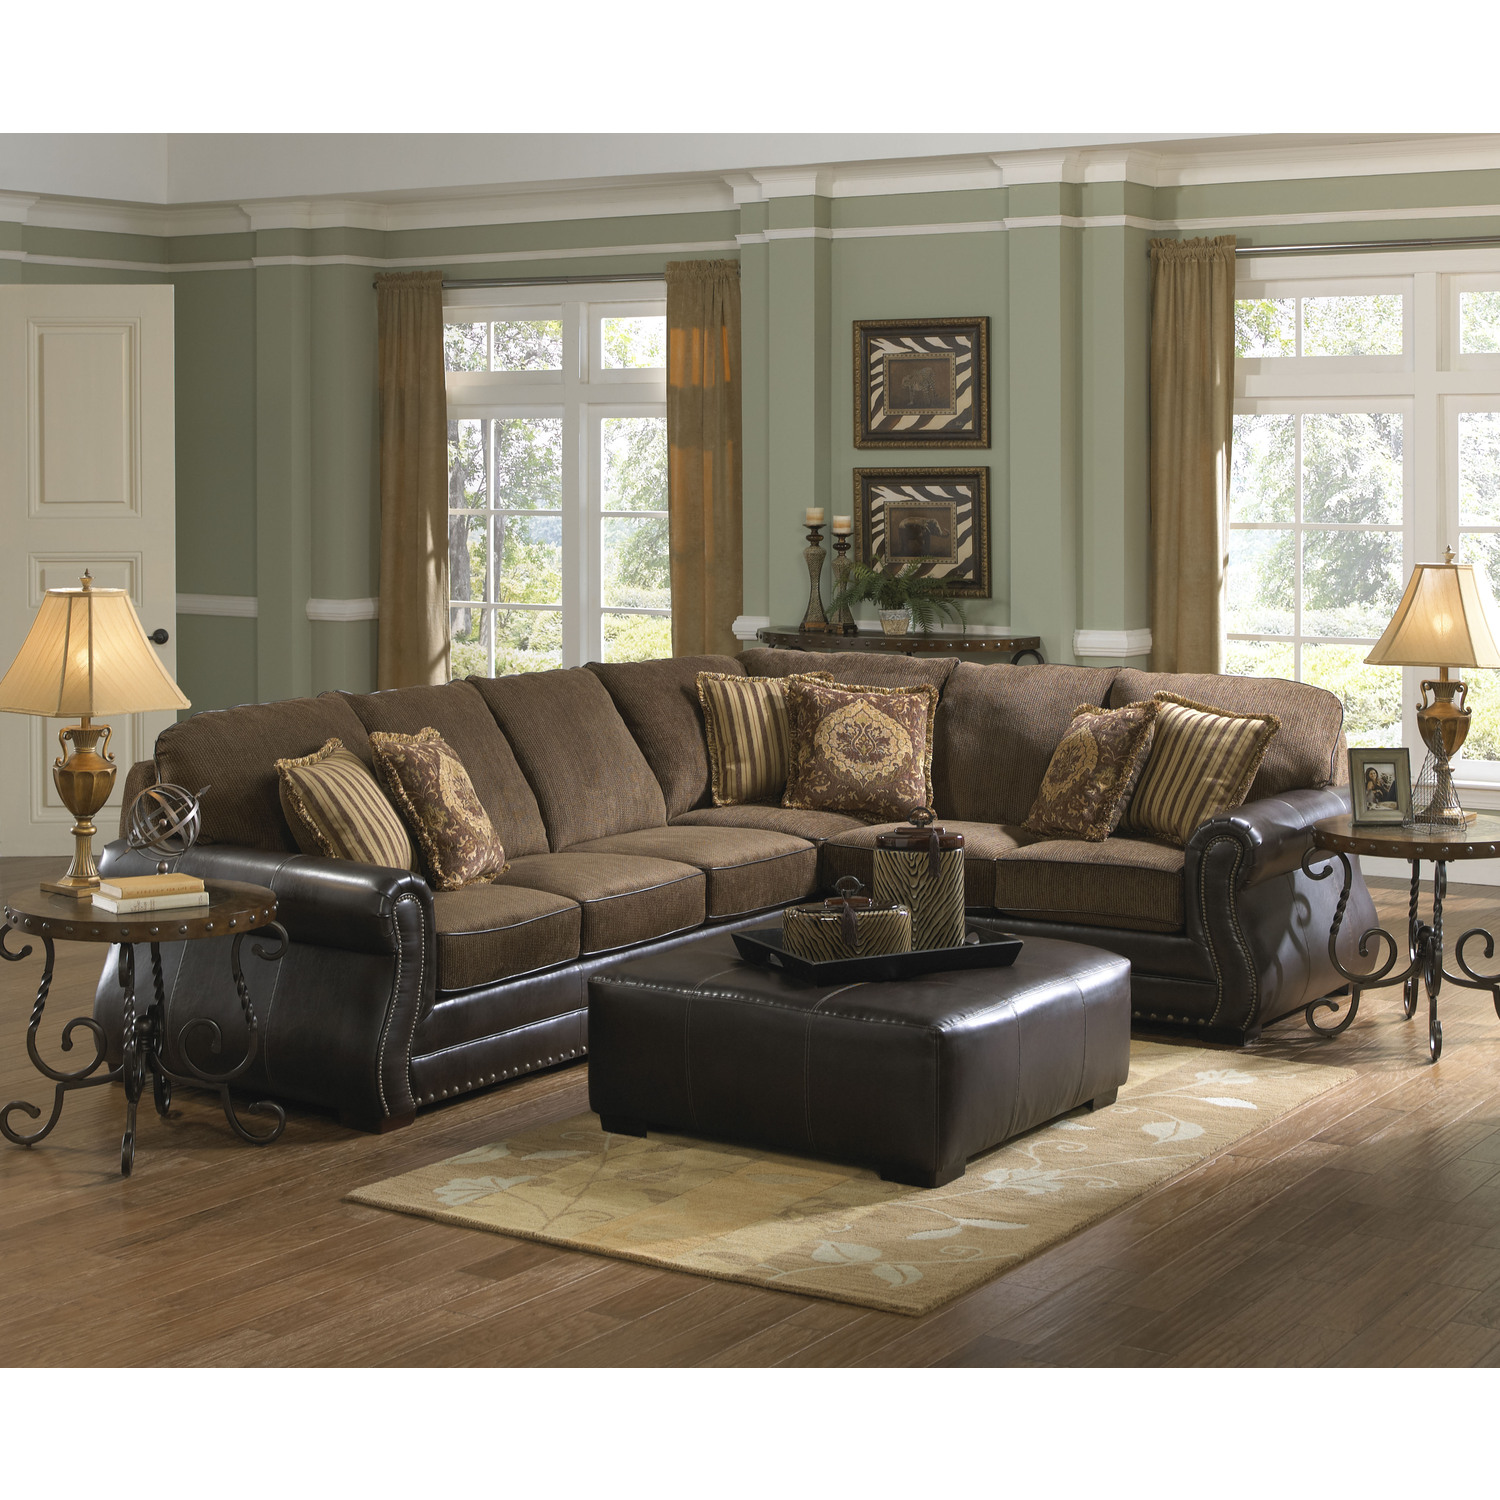 Robert Michaels Furniture Cheap Ashley Furniture Living Room